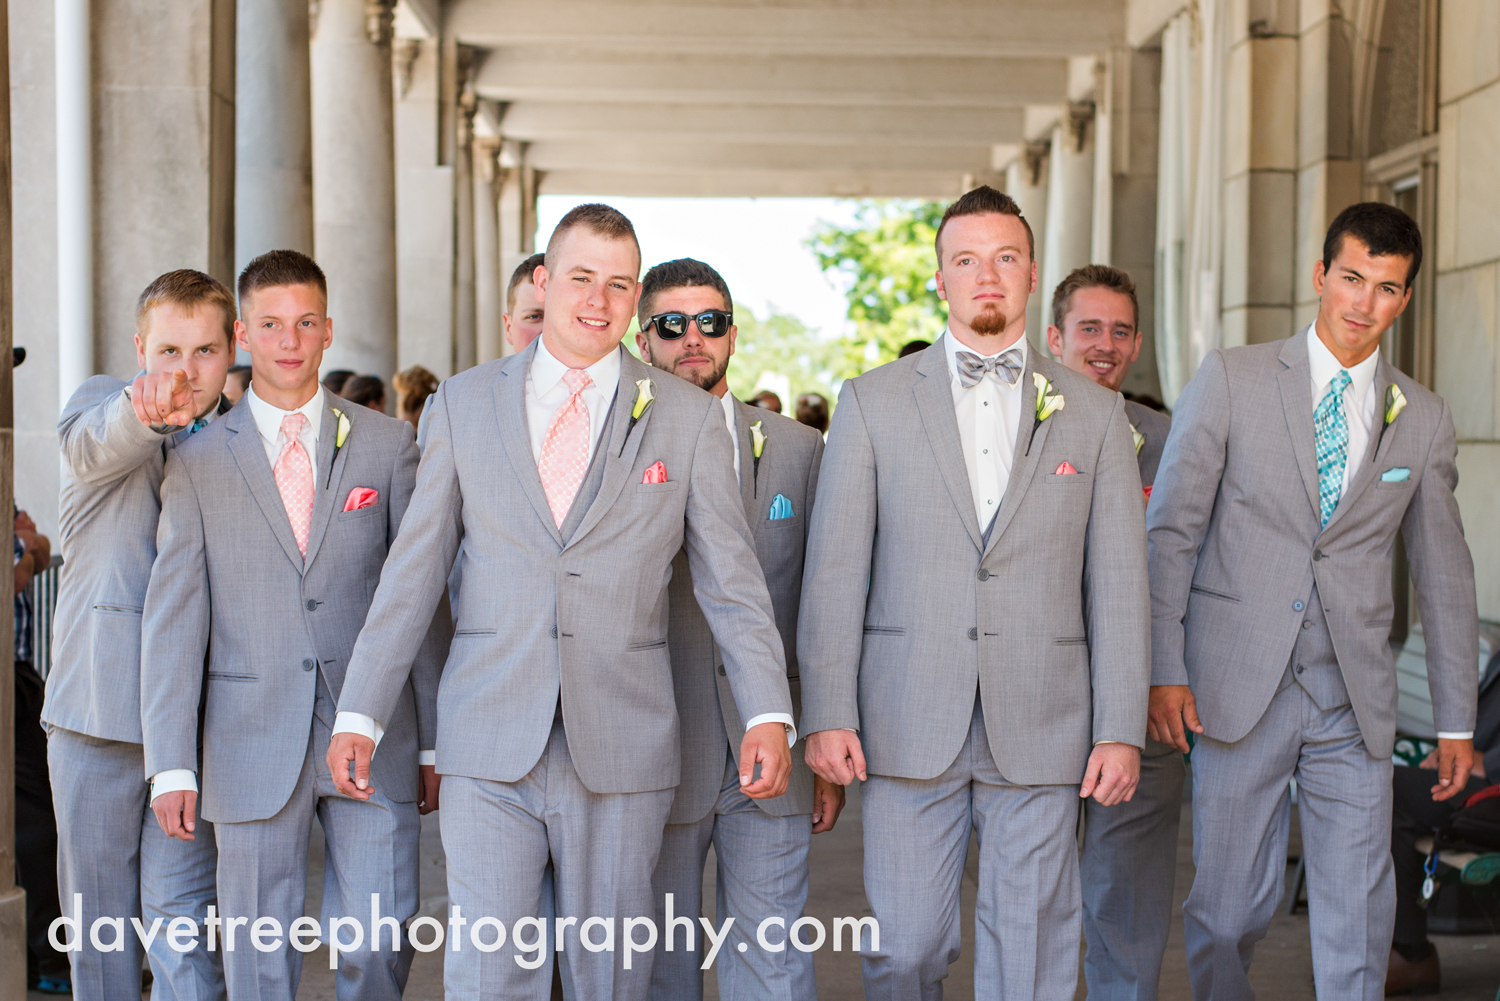 veranda_wedding_photographer_st_joseph_wedding_159.jpg